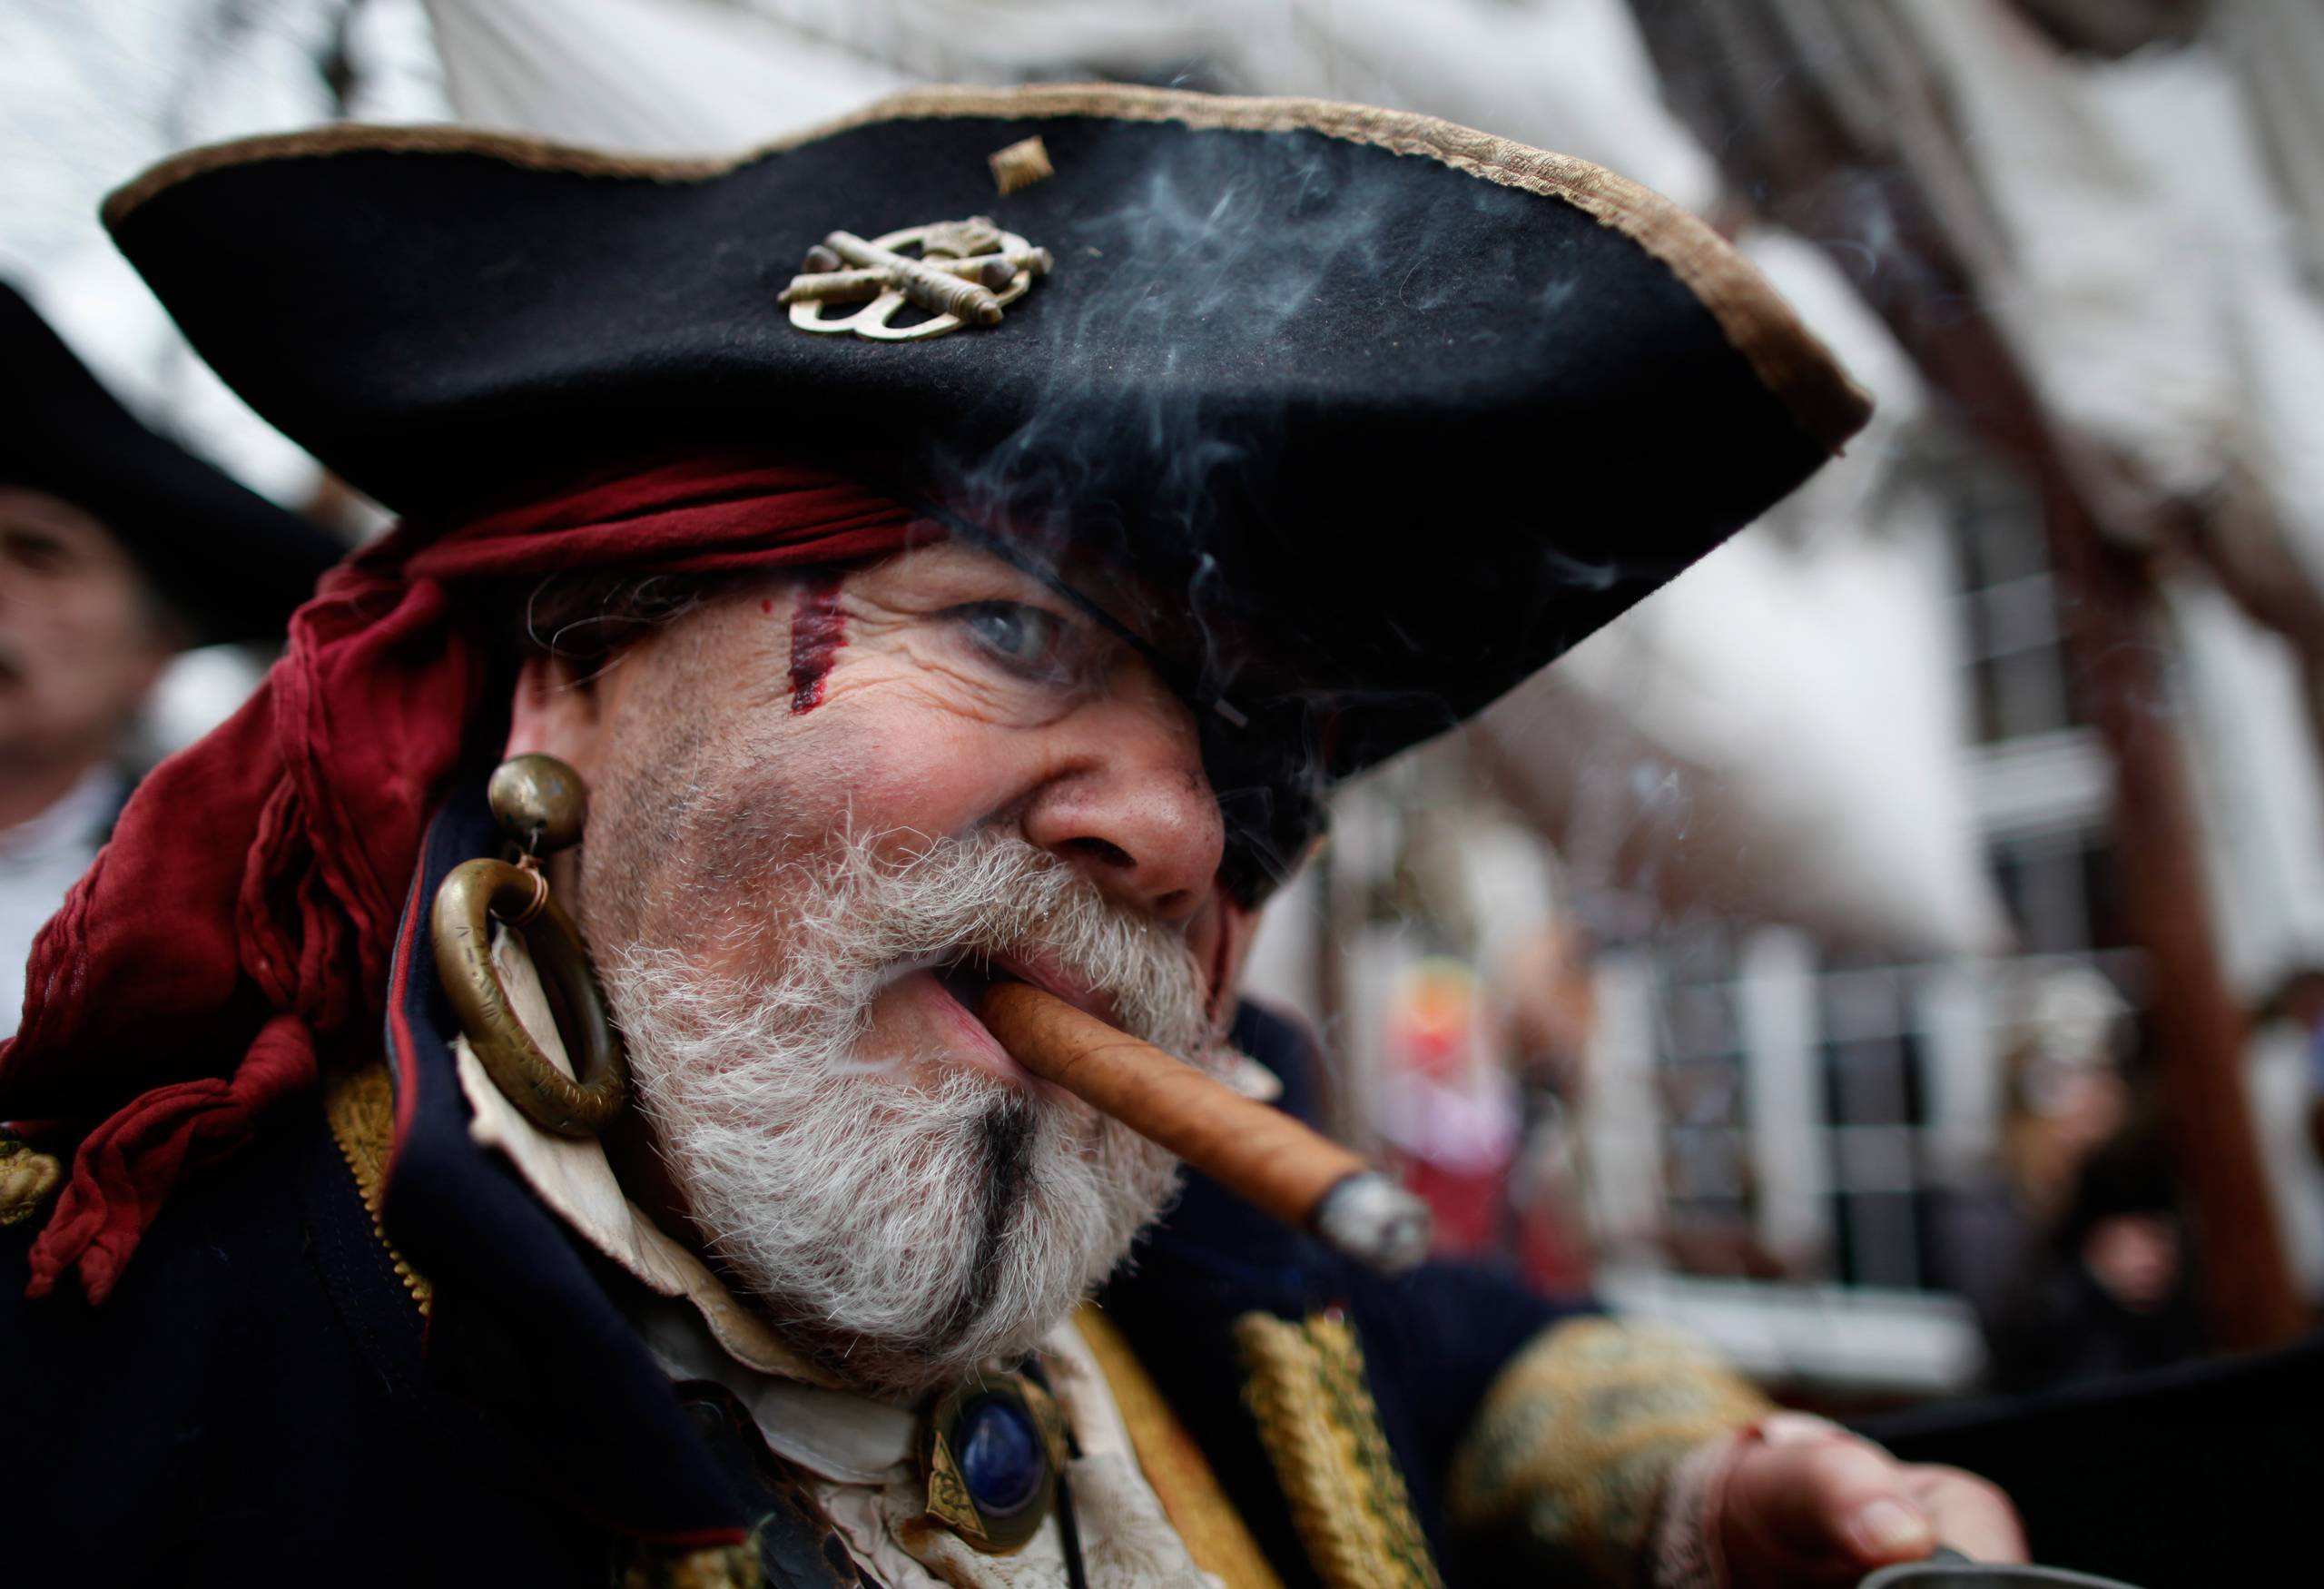 A man dressed as pirate poses during  Weiberfastnacht  (Women's Carnival) in Cologne, Germany, on Feb. 7, 2013.